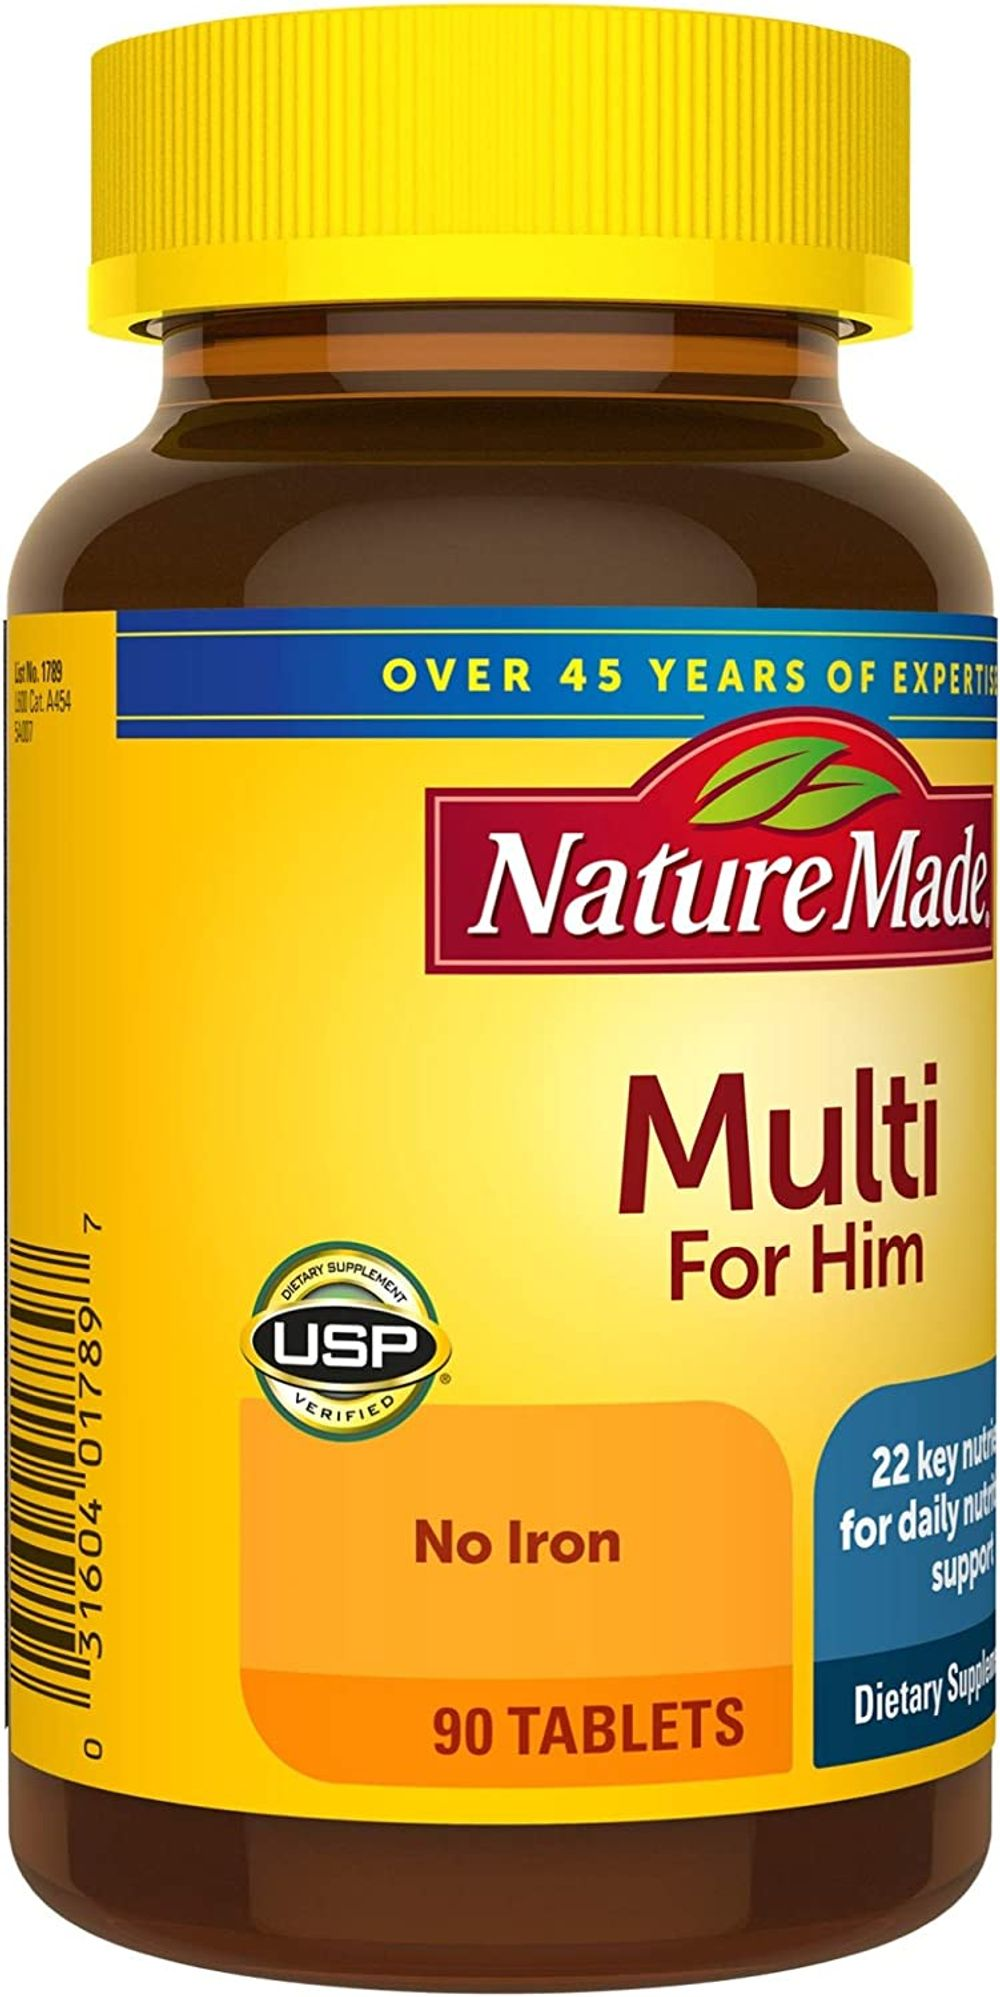 Nature Made Men's Multivitamin Tablets, 90 Count for Daily Nutritional Support